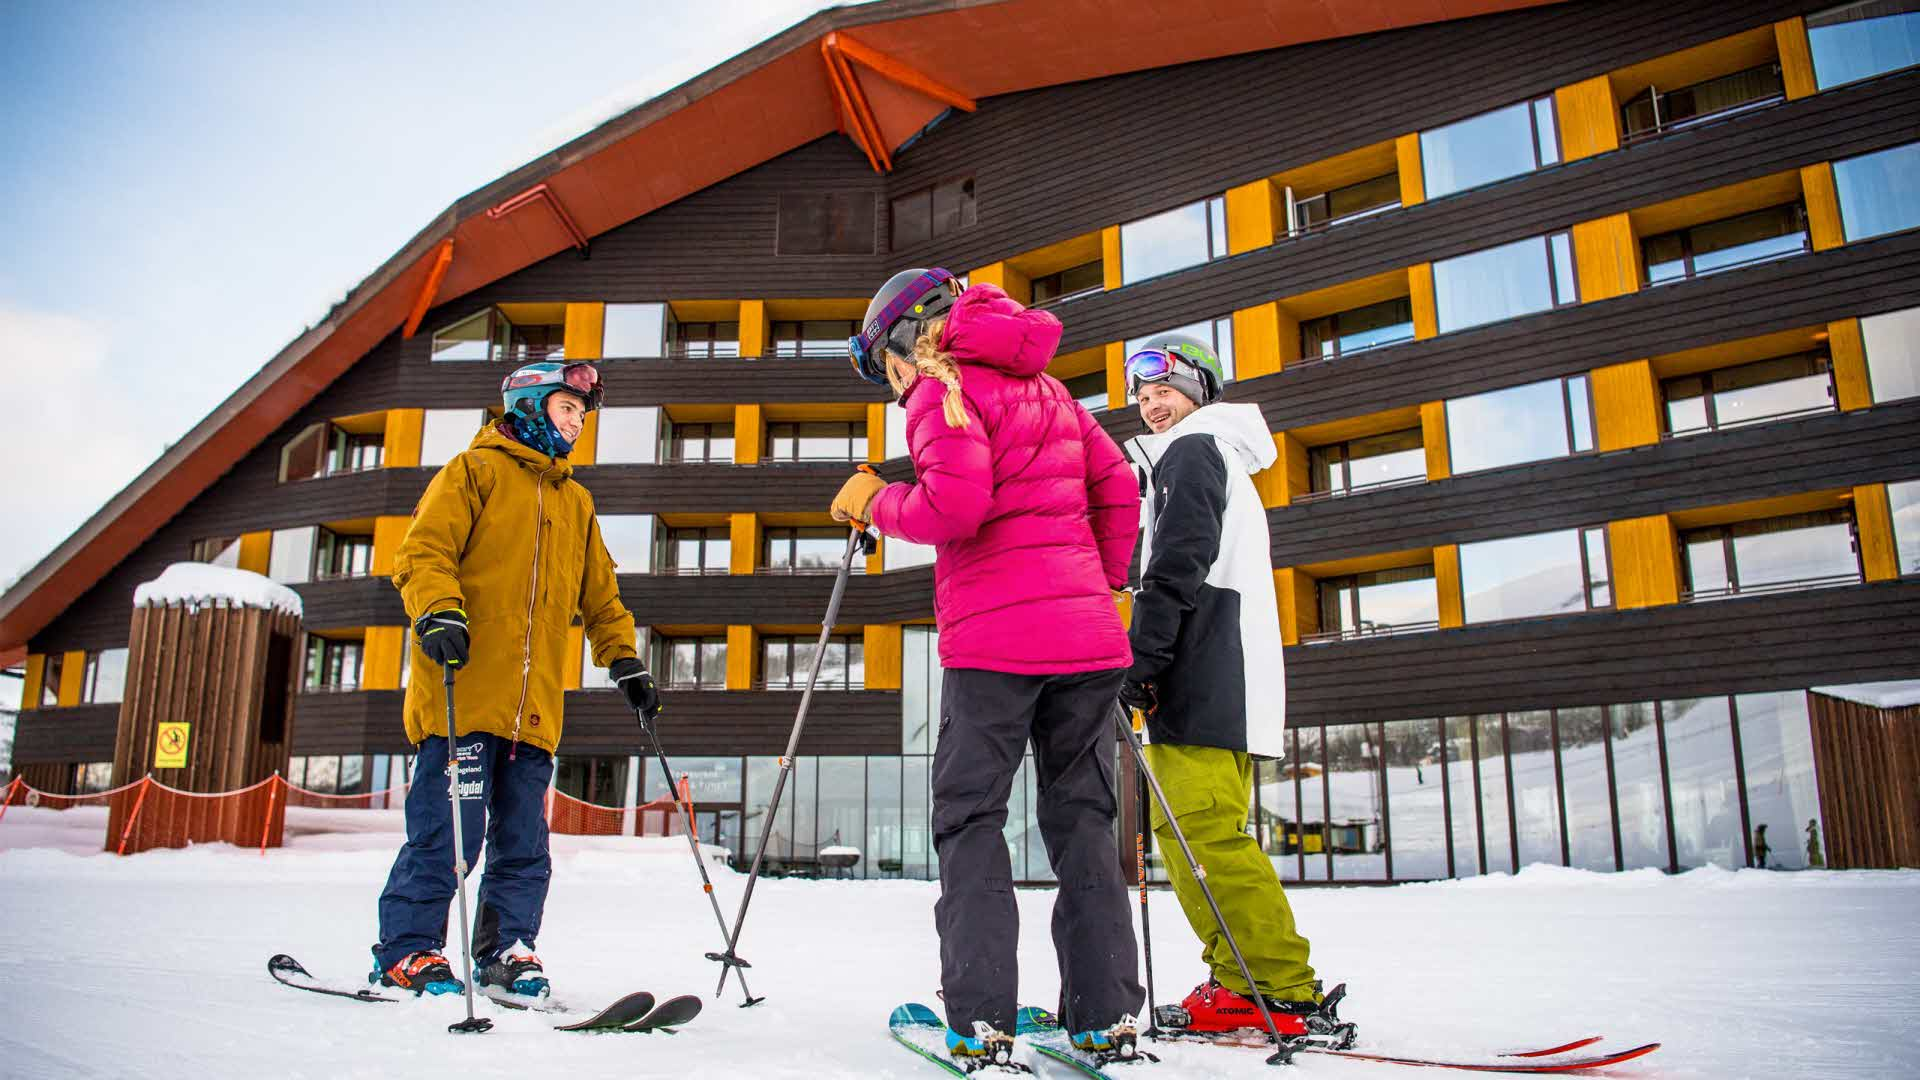 Three people on skis standing by the slopes outside Myrkdalen Hotel